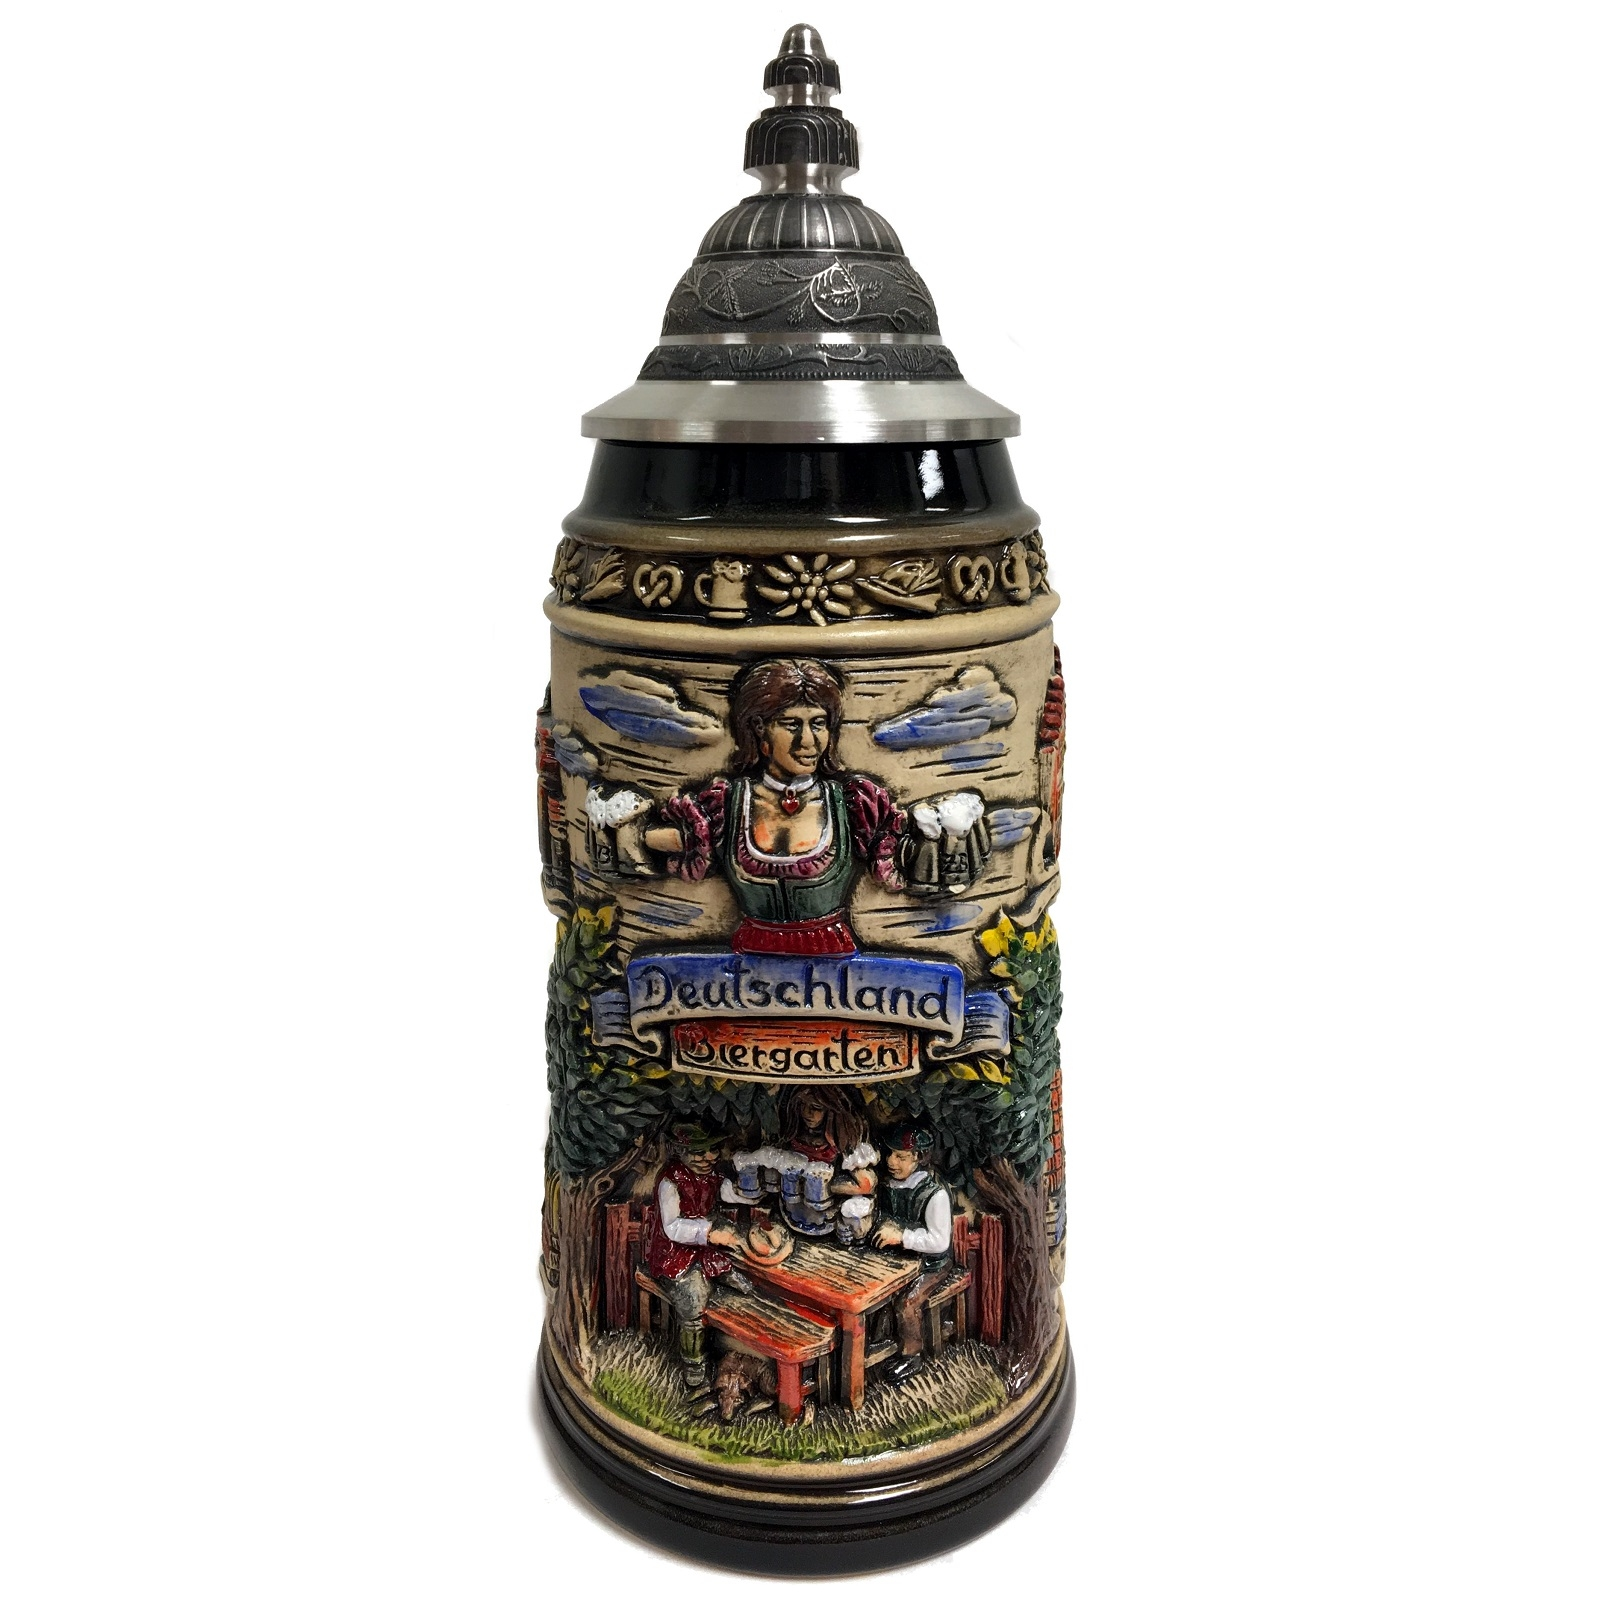 Deutschland Germany Biergarten Beer Garden LE Stoneware German Beer Stein 1 L